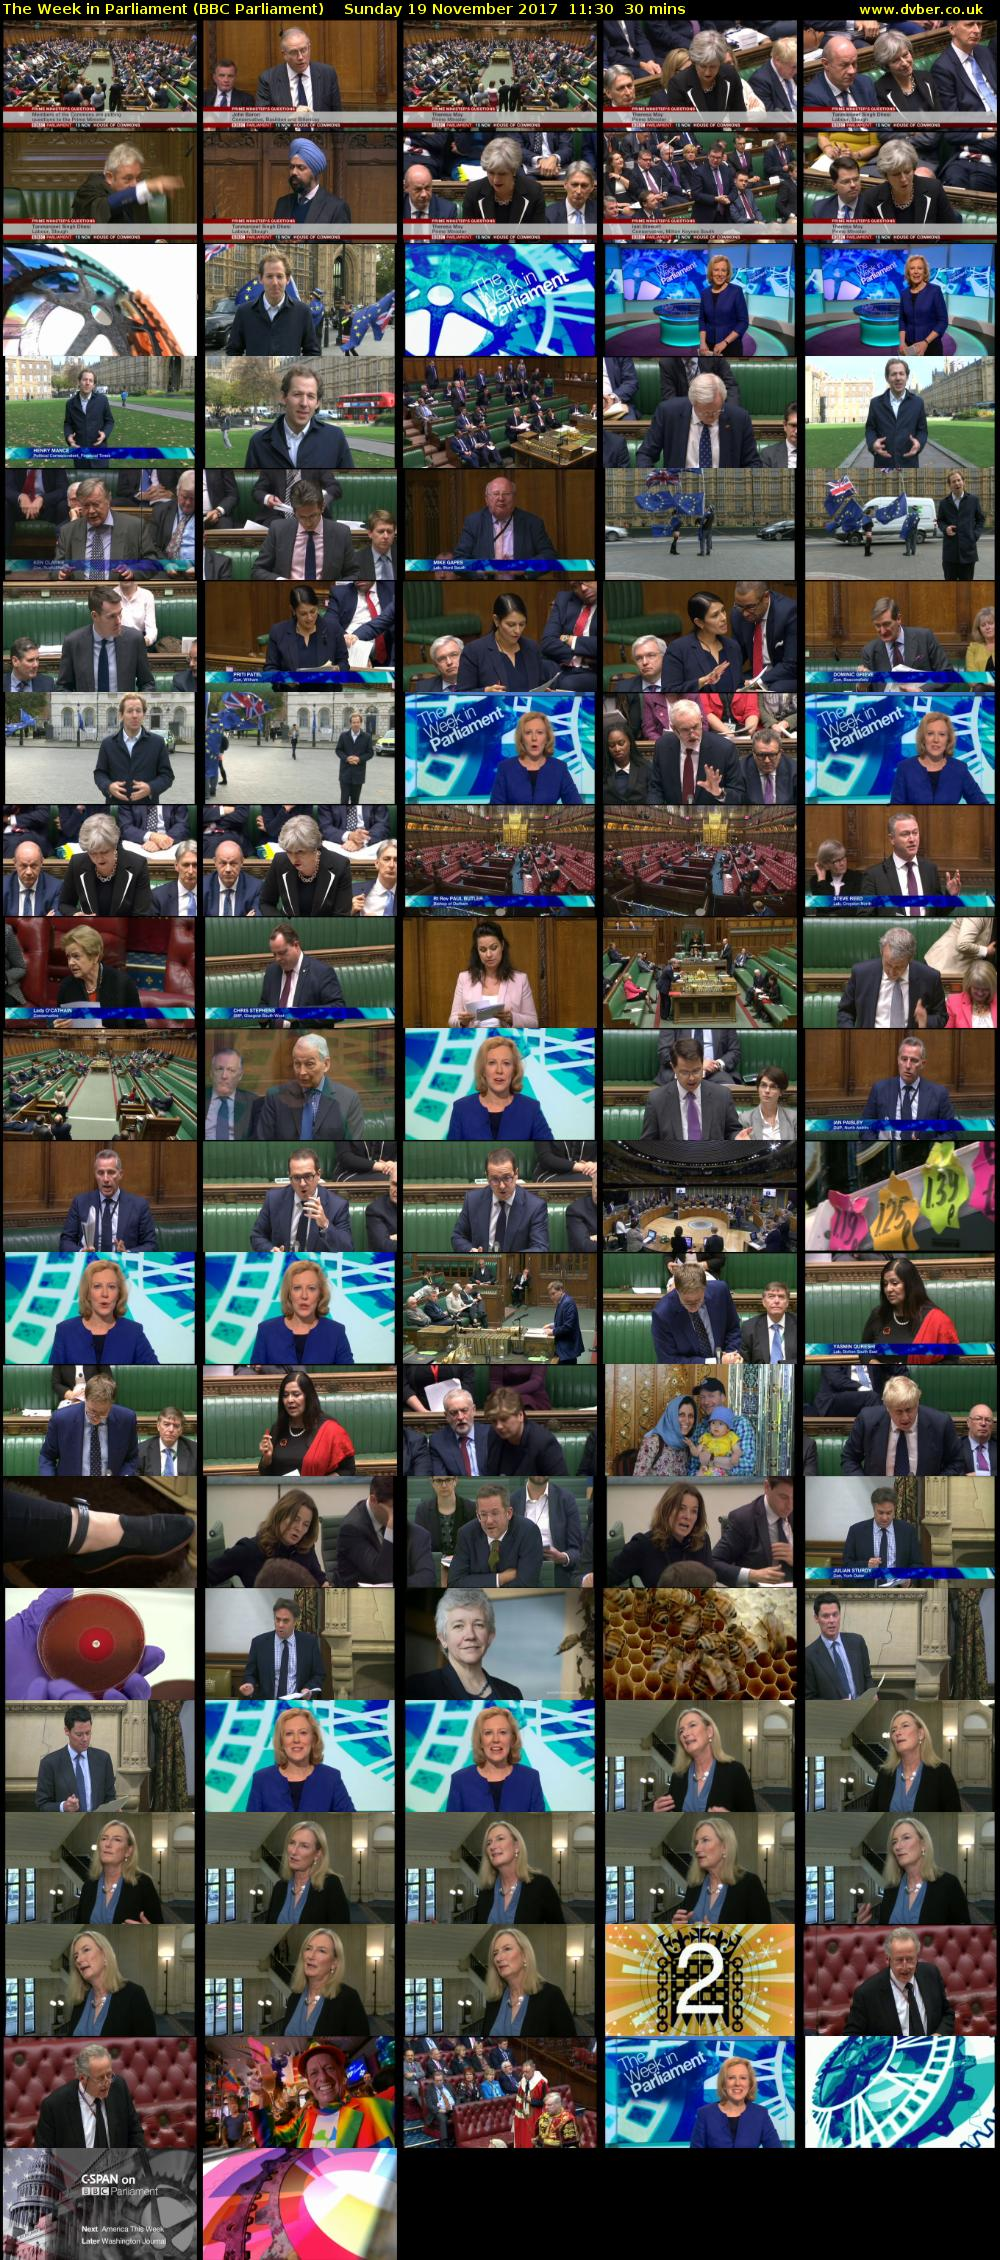 The Week in Parliament (BBC Parliament) Sunday 19 November 2017 11:30 - 12:00